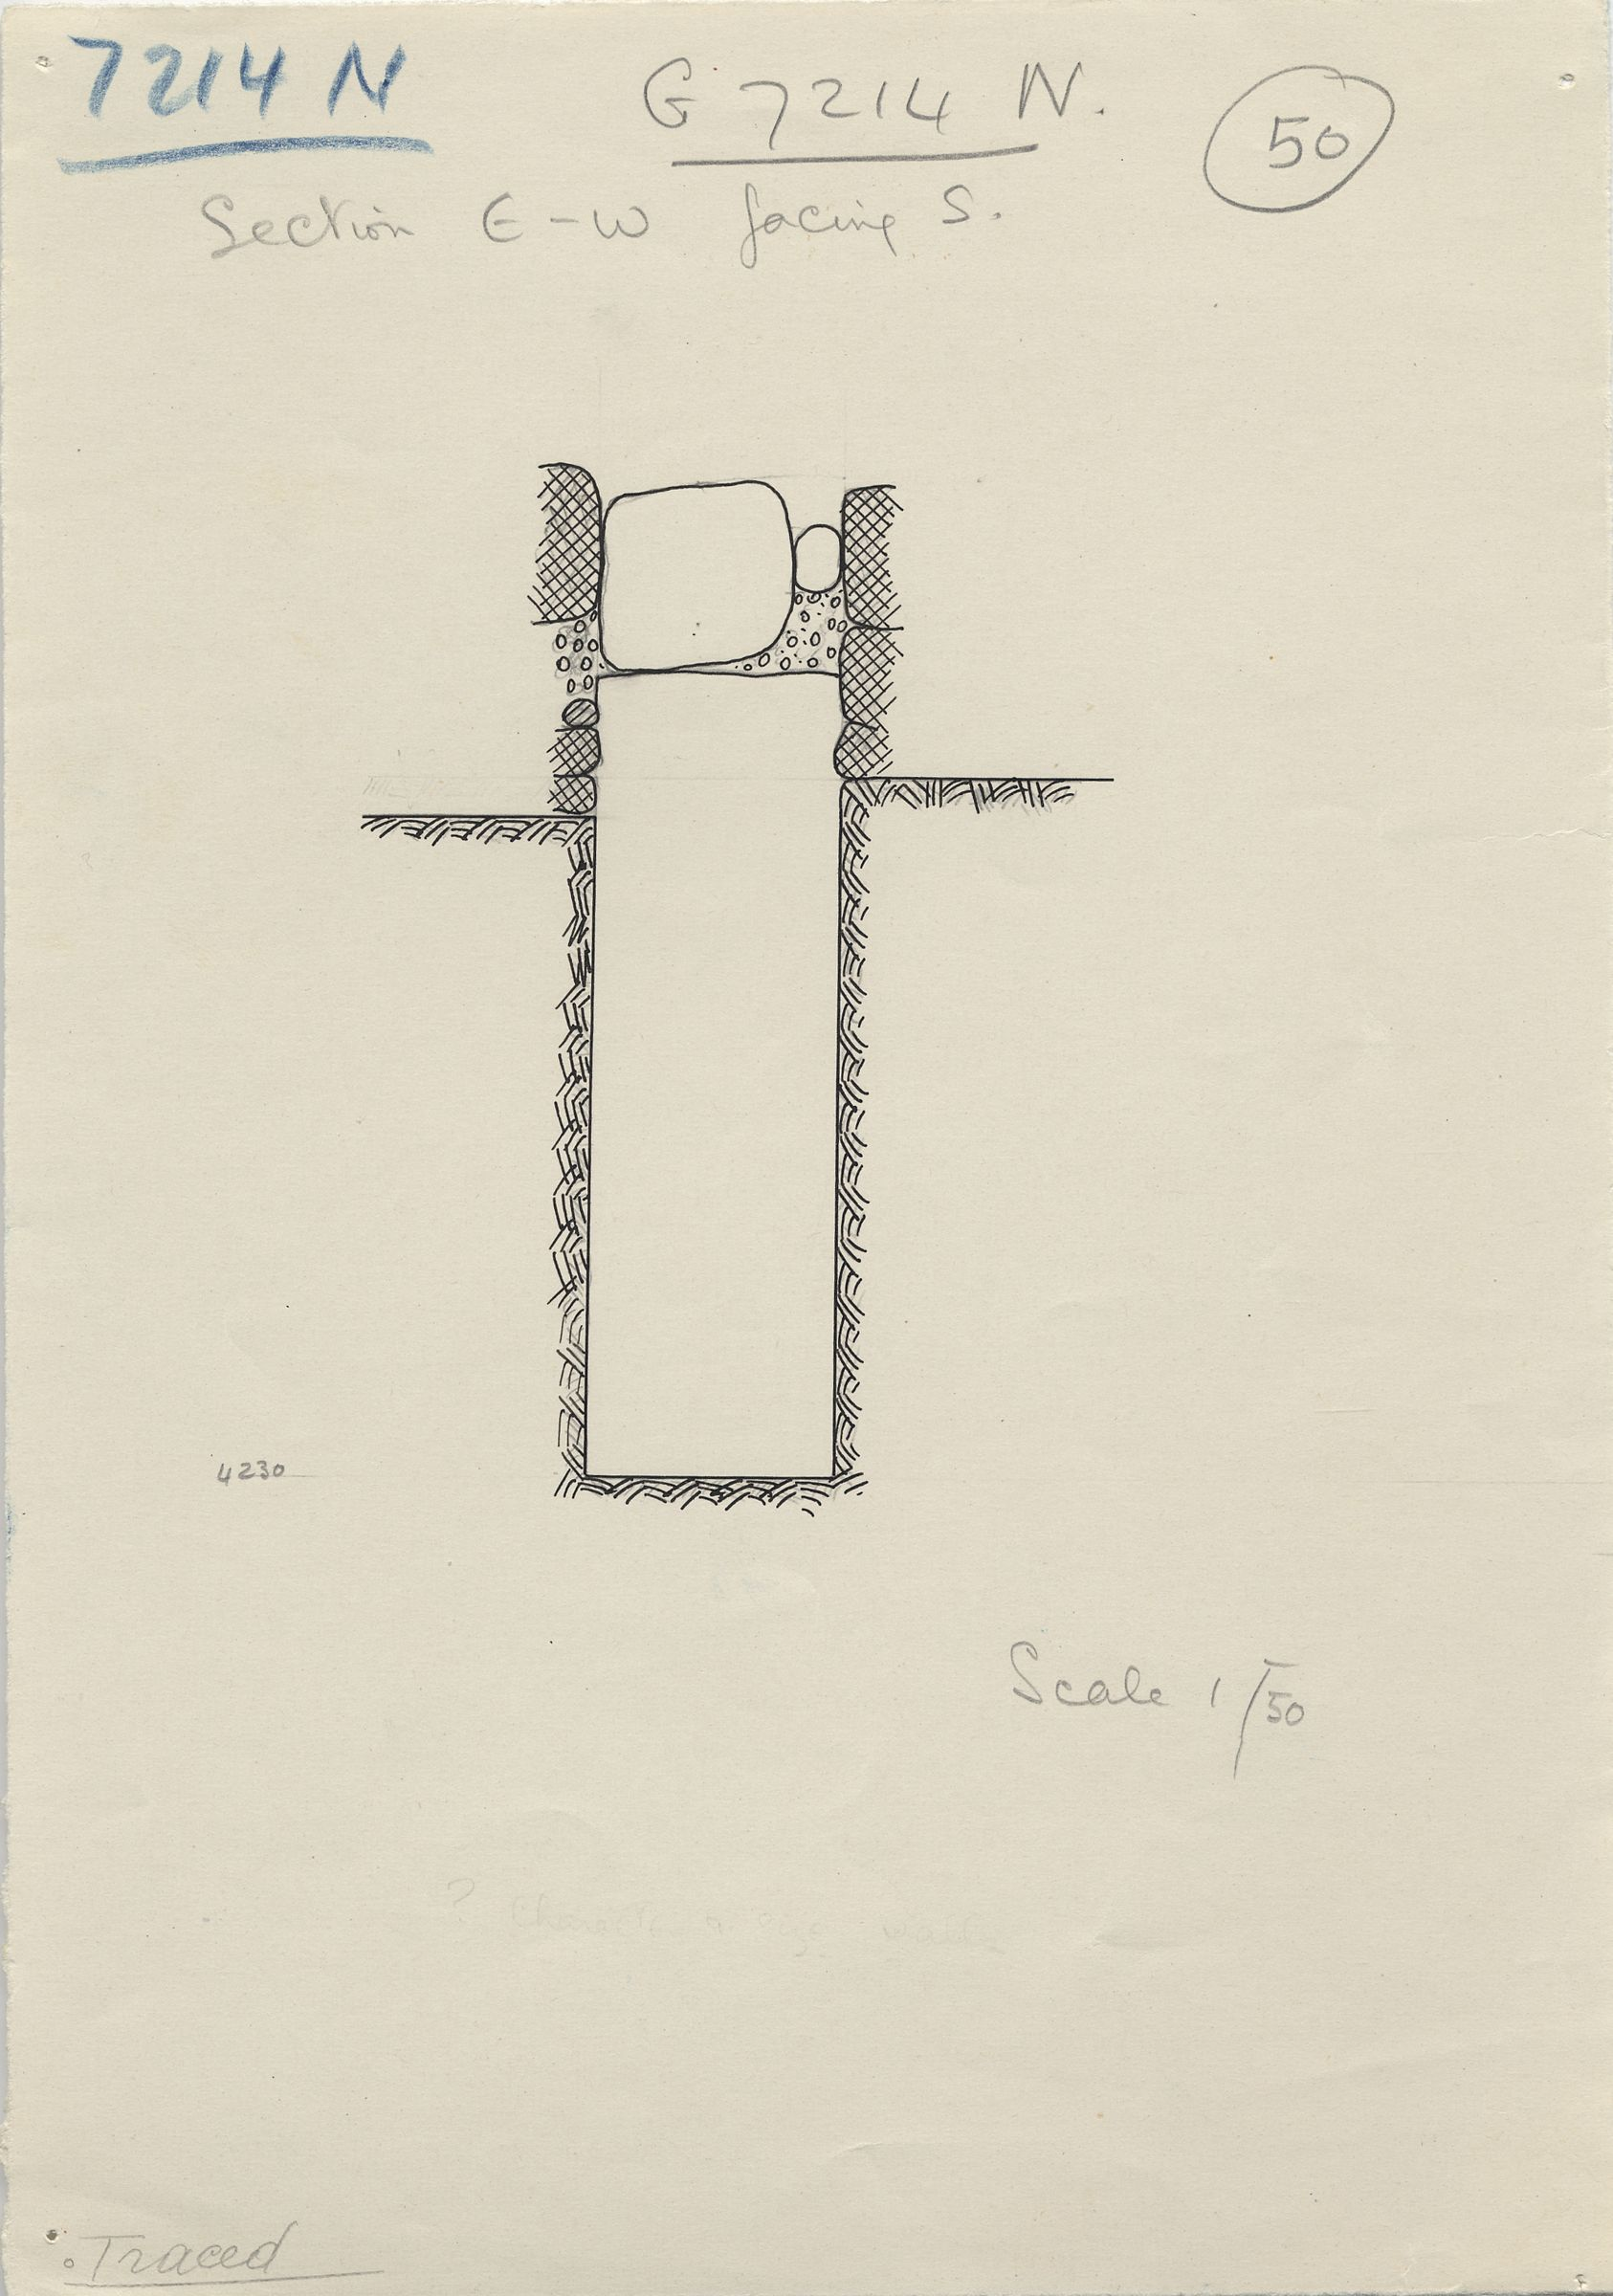 Maps and plans: G 7214, Shaft N